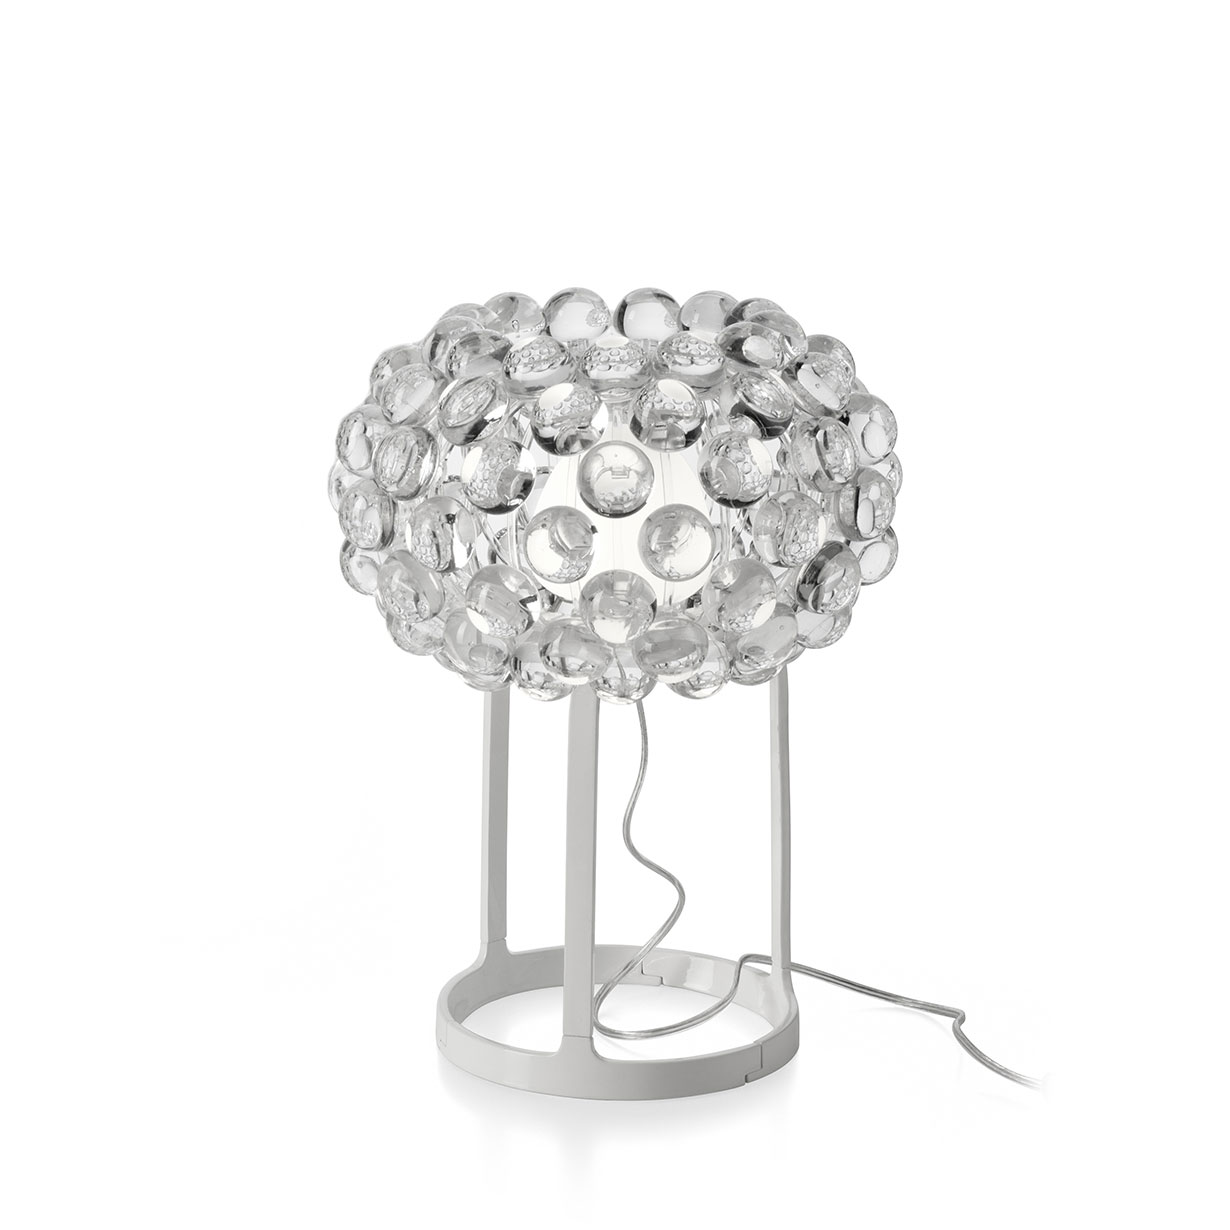 Caboche S table lamp | LOVEThESIGN